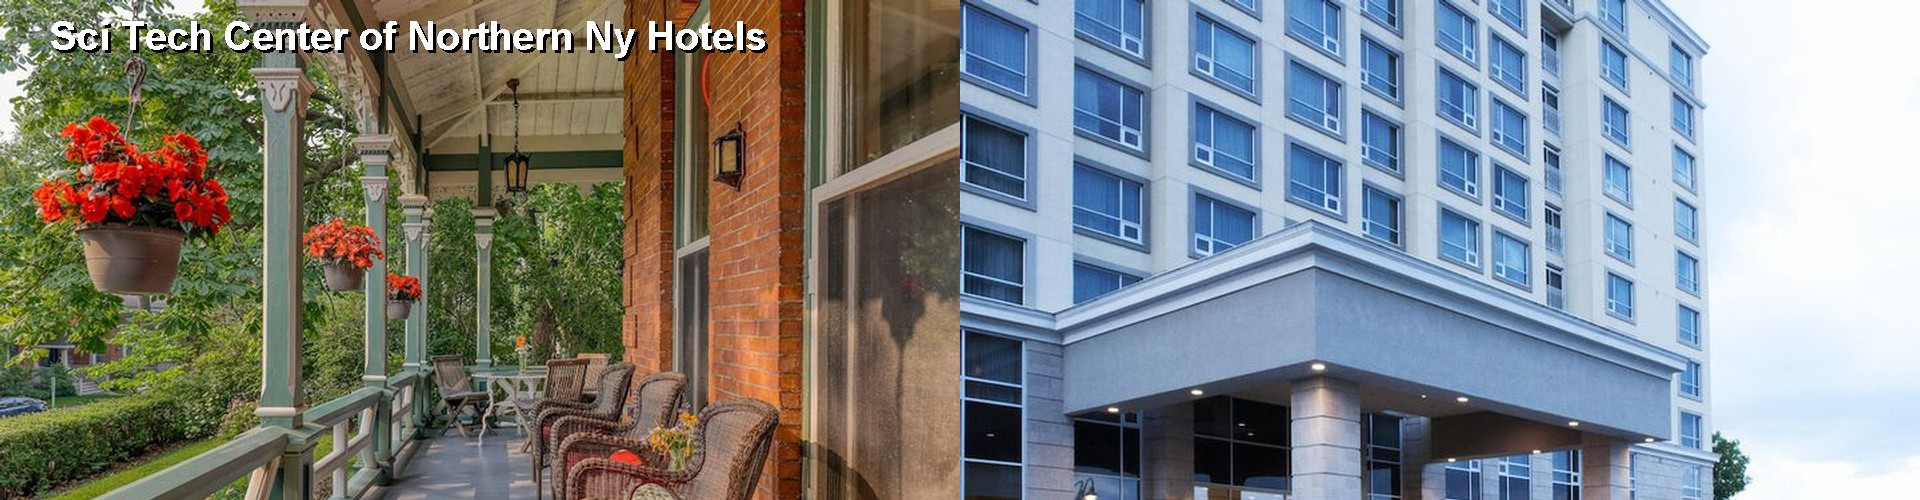 5 Best Hotels near Sci Tech Center of Northern Ny